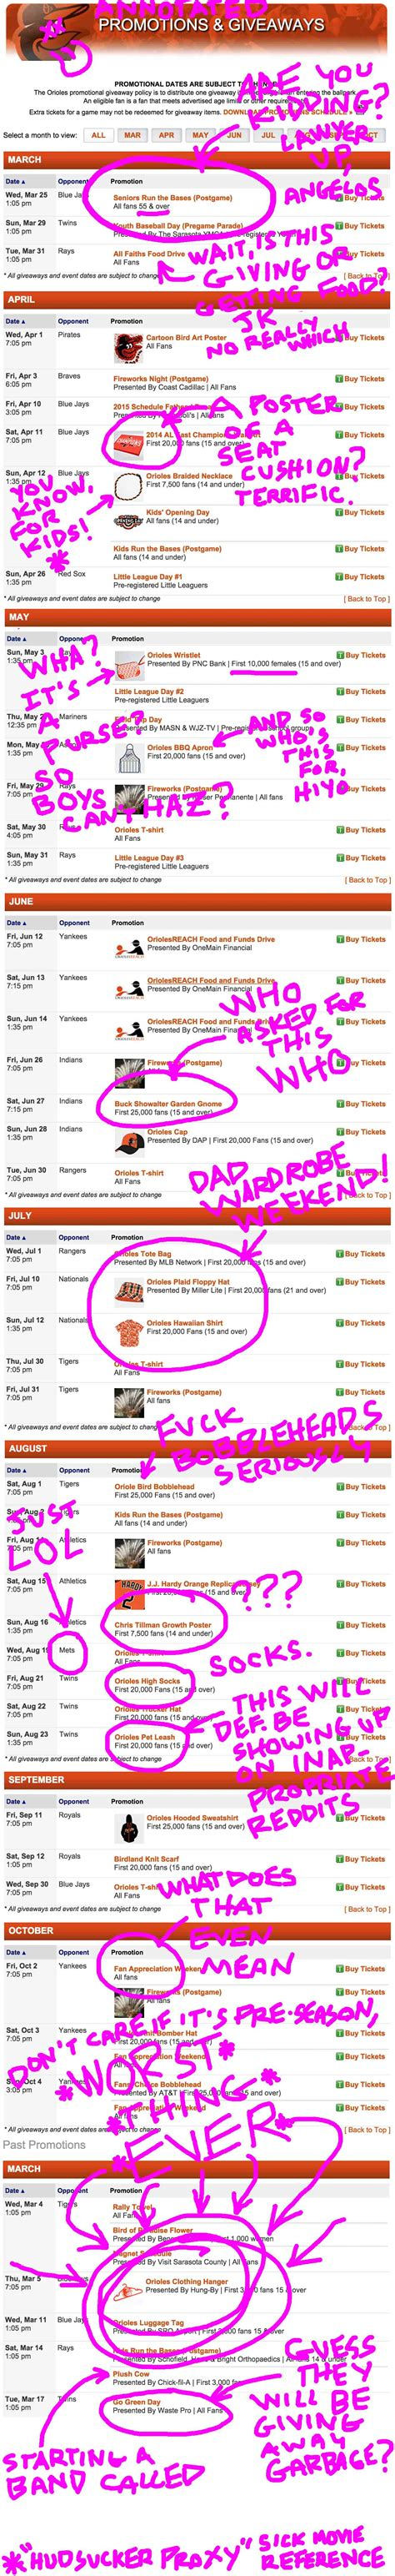 Orioles Giveaways - a partially annotated list of baltimore orioles promotions and giveaways